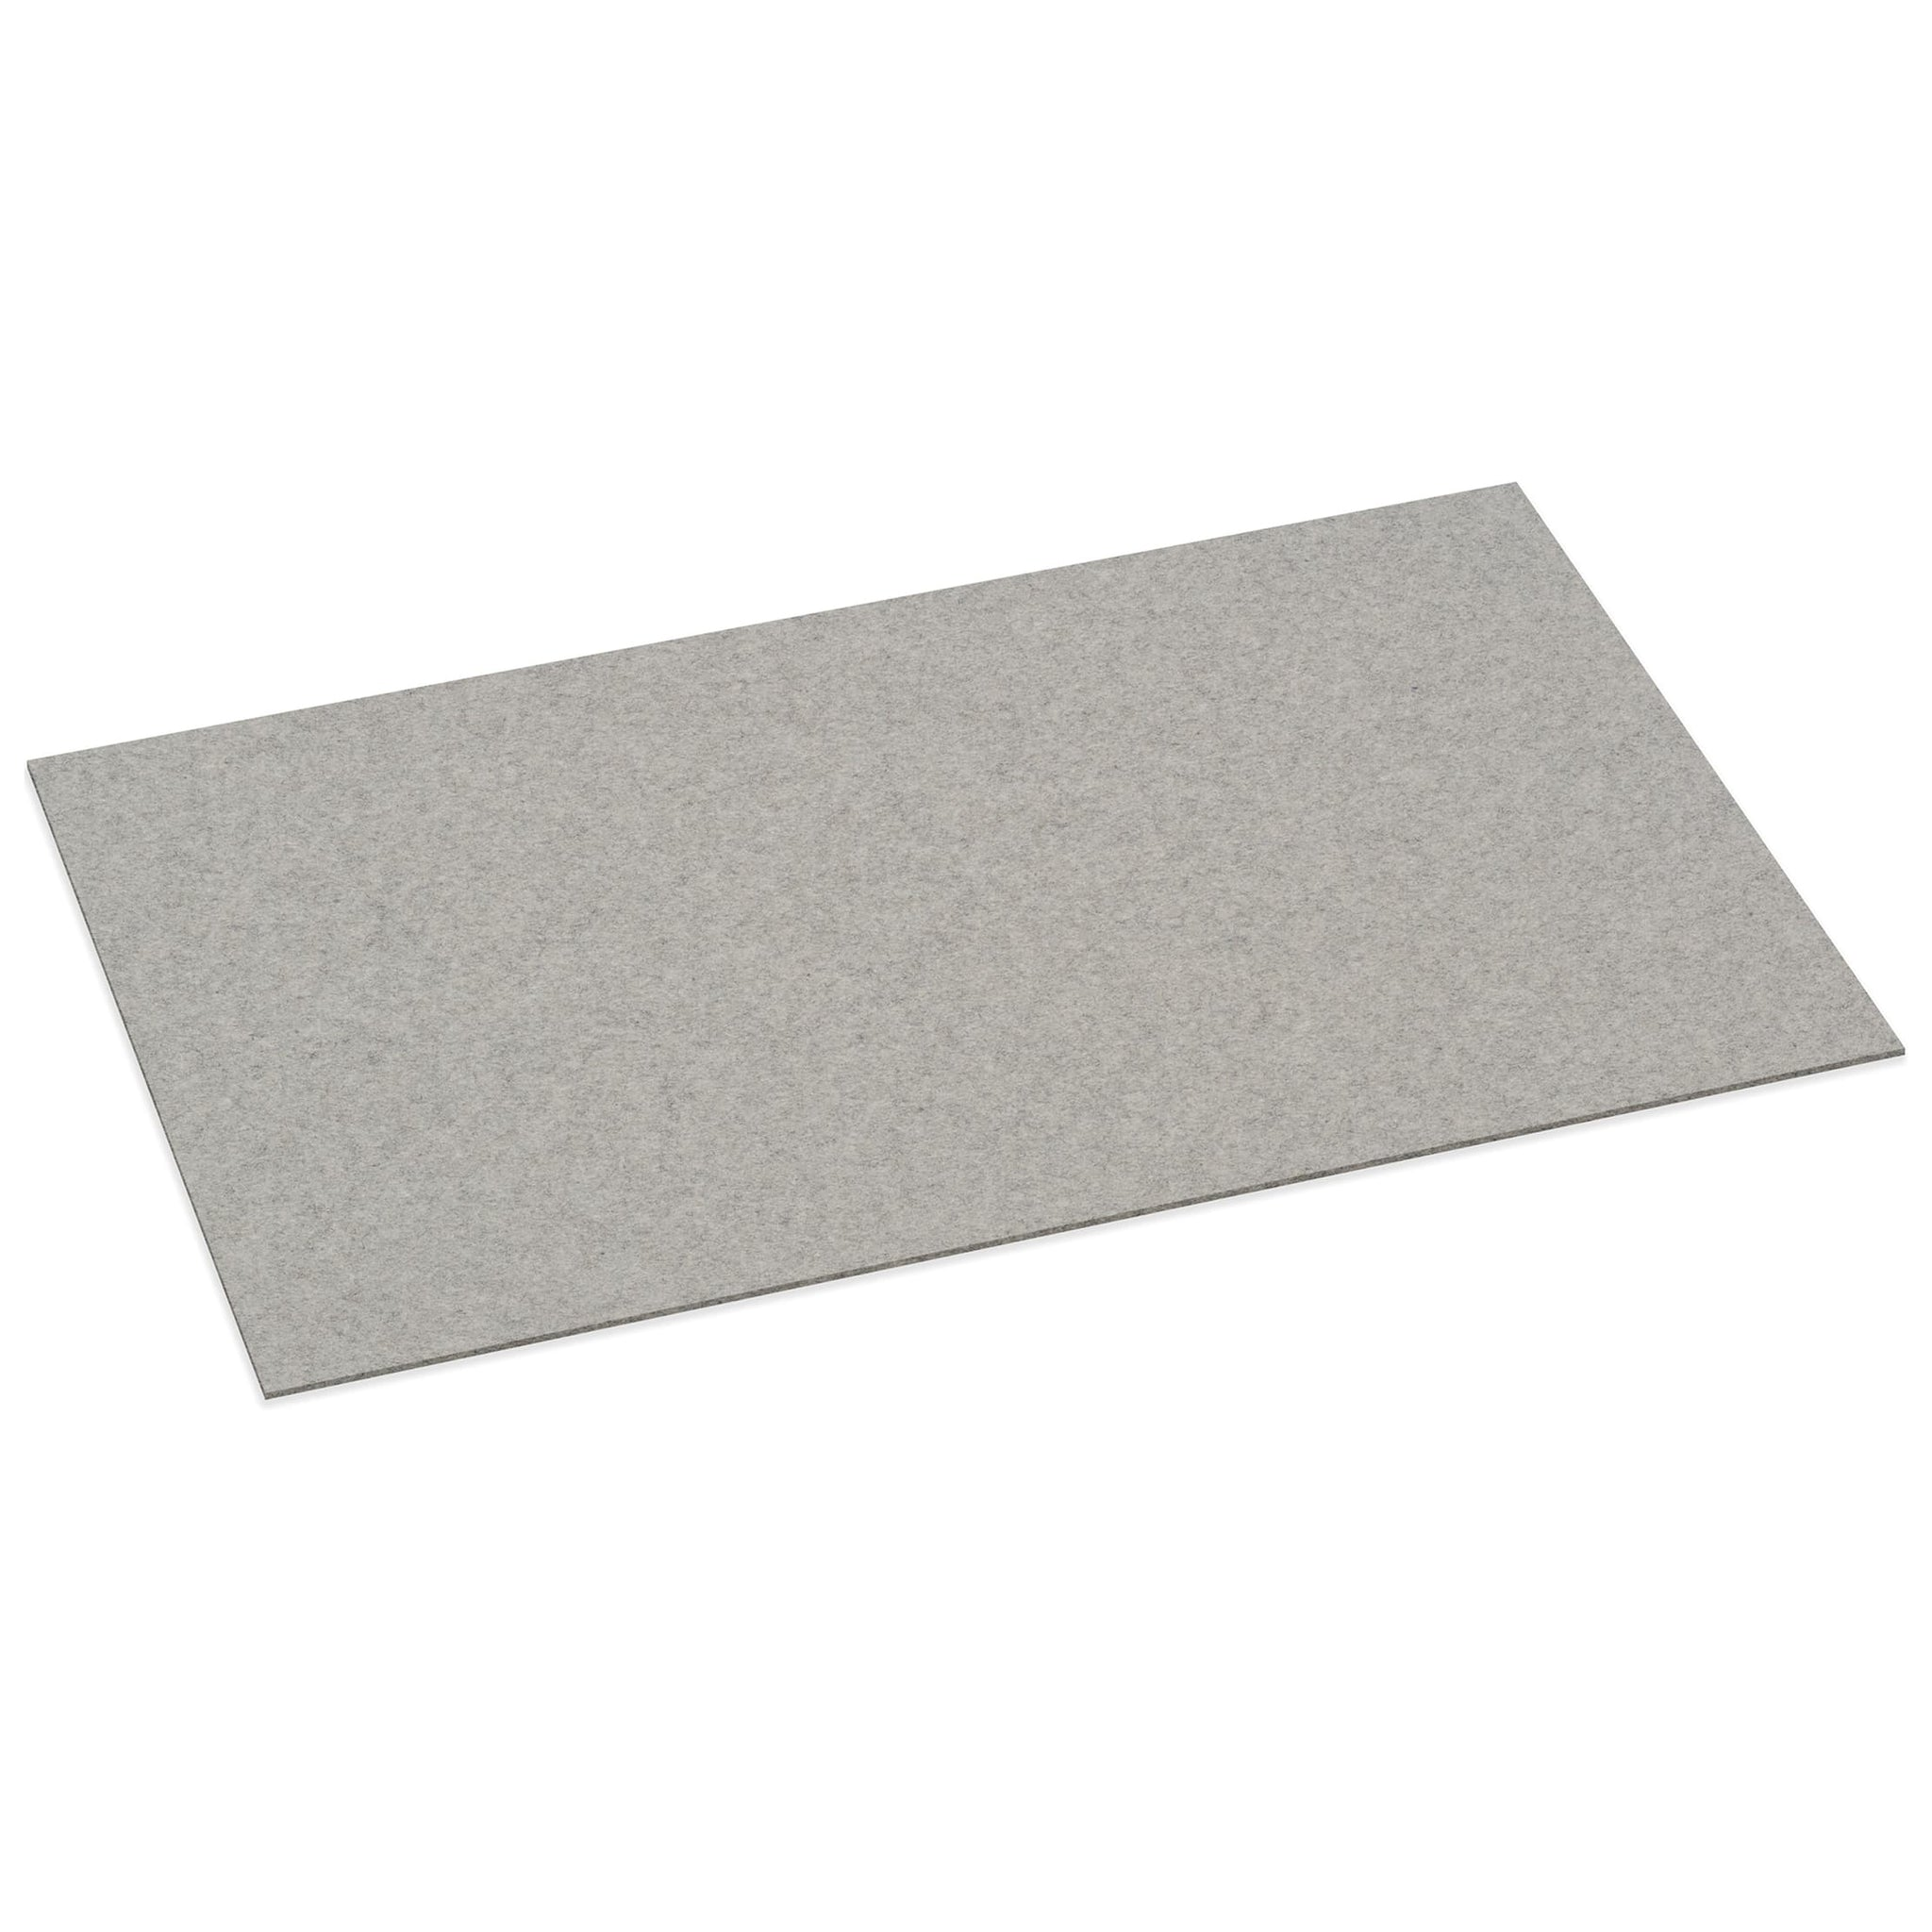 Rectangular Felt Desk Pad in Light Grey by Hey-Sign 300109007 looking at Front-Angle